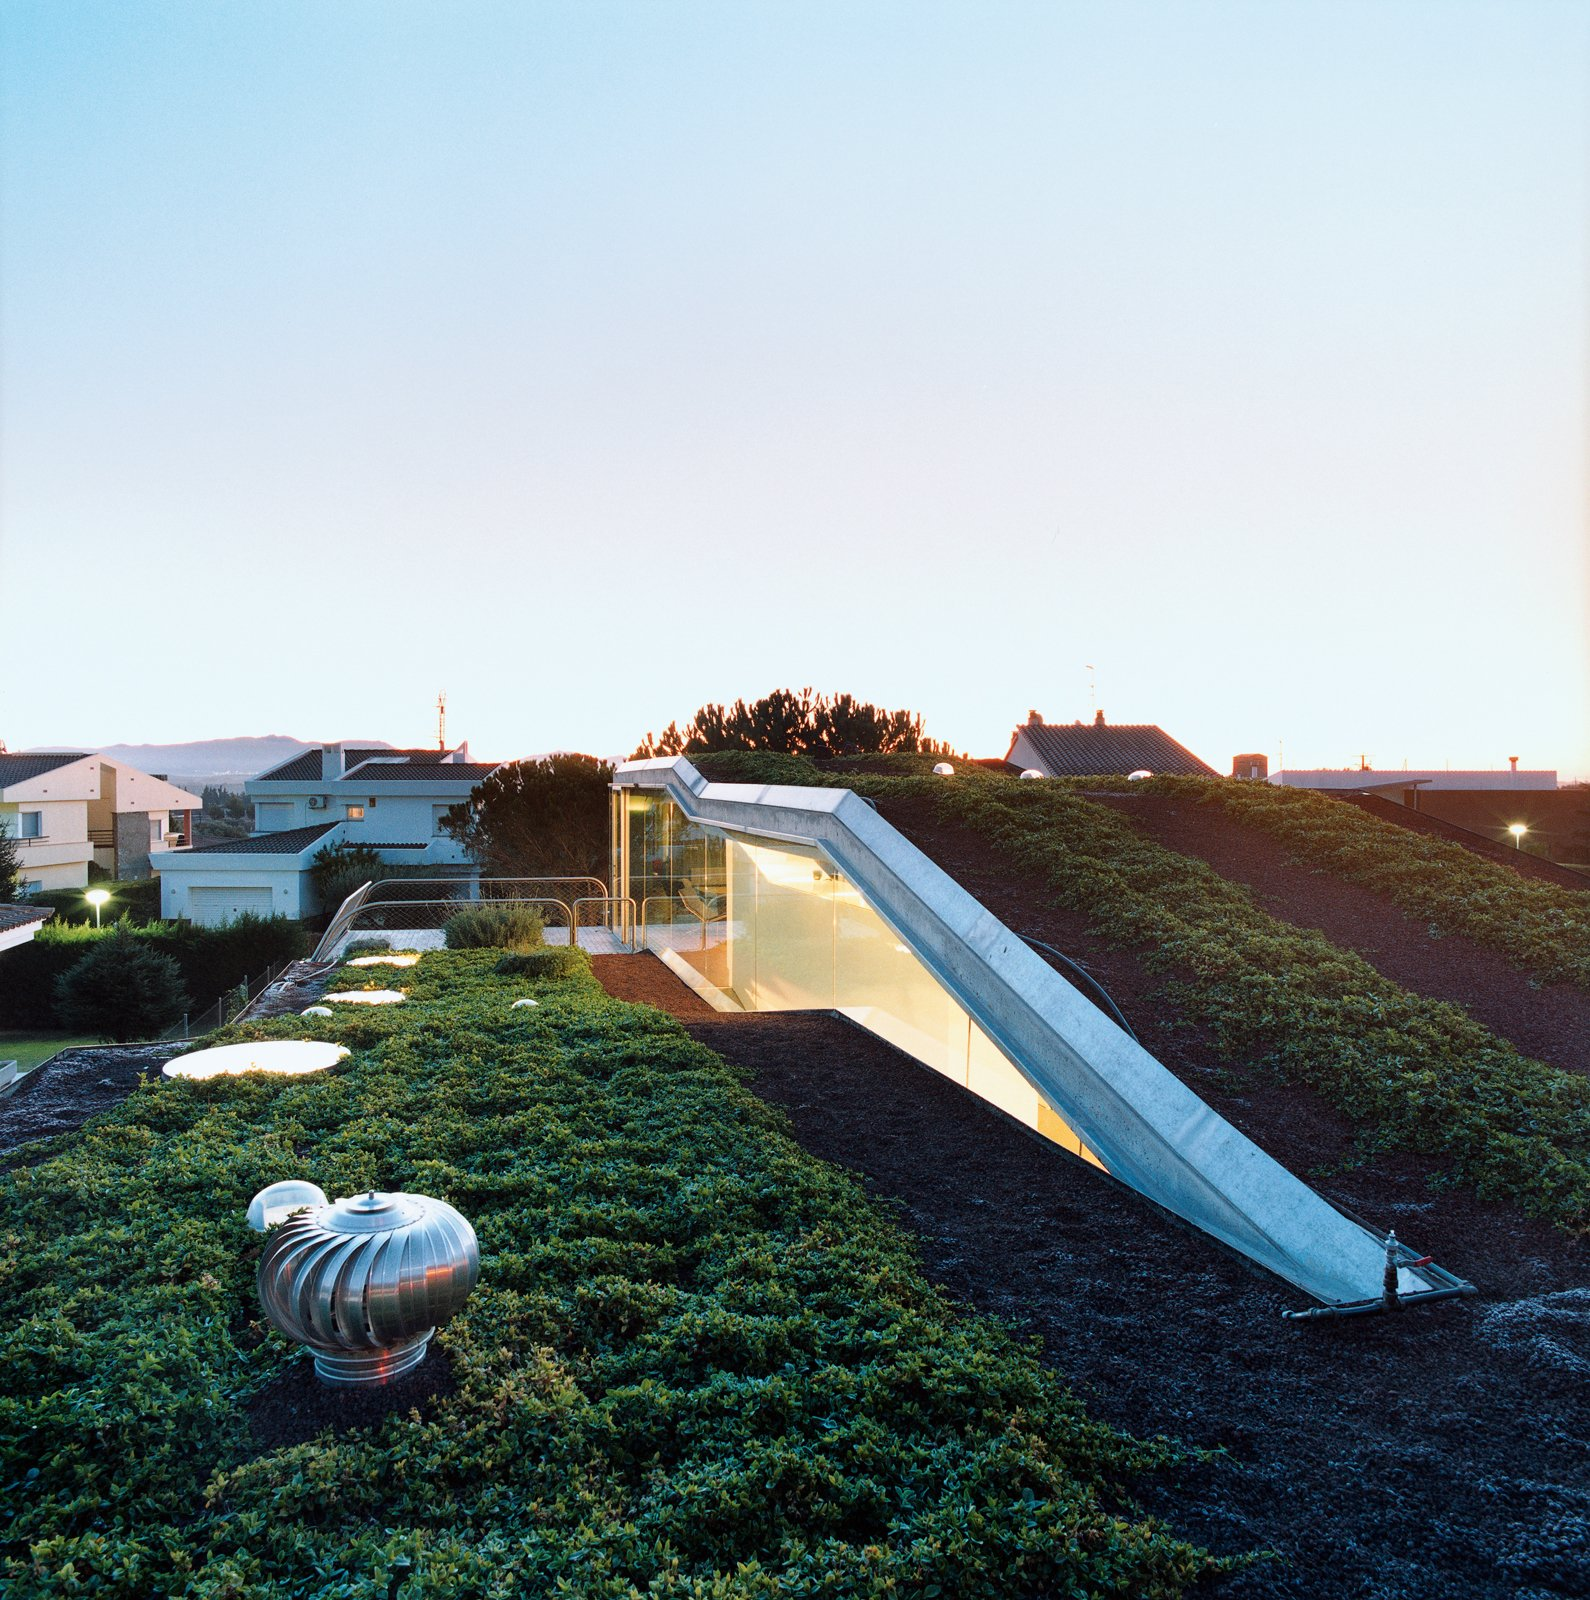 The hydroponic rooftop garden grows out of volcanic stones. The home is conceived as a giant C-shaped spiral. Tagged: Outdoor, Rooftop, Grass, and Gardens.  Photo 3 of 11 in 10 Modern Rooftops For Summer Relaxing and Entertaining from Suburban House of the Future by Cloud9